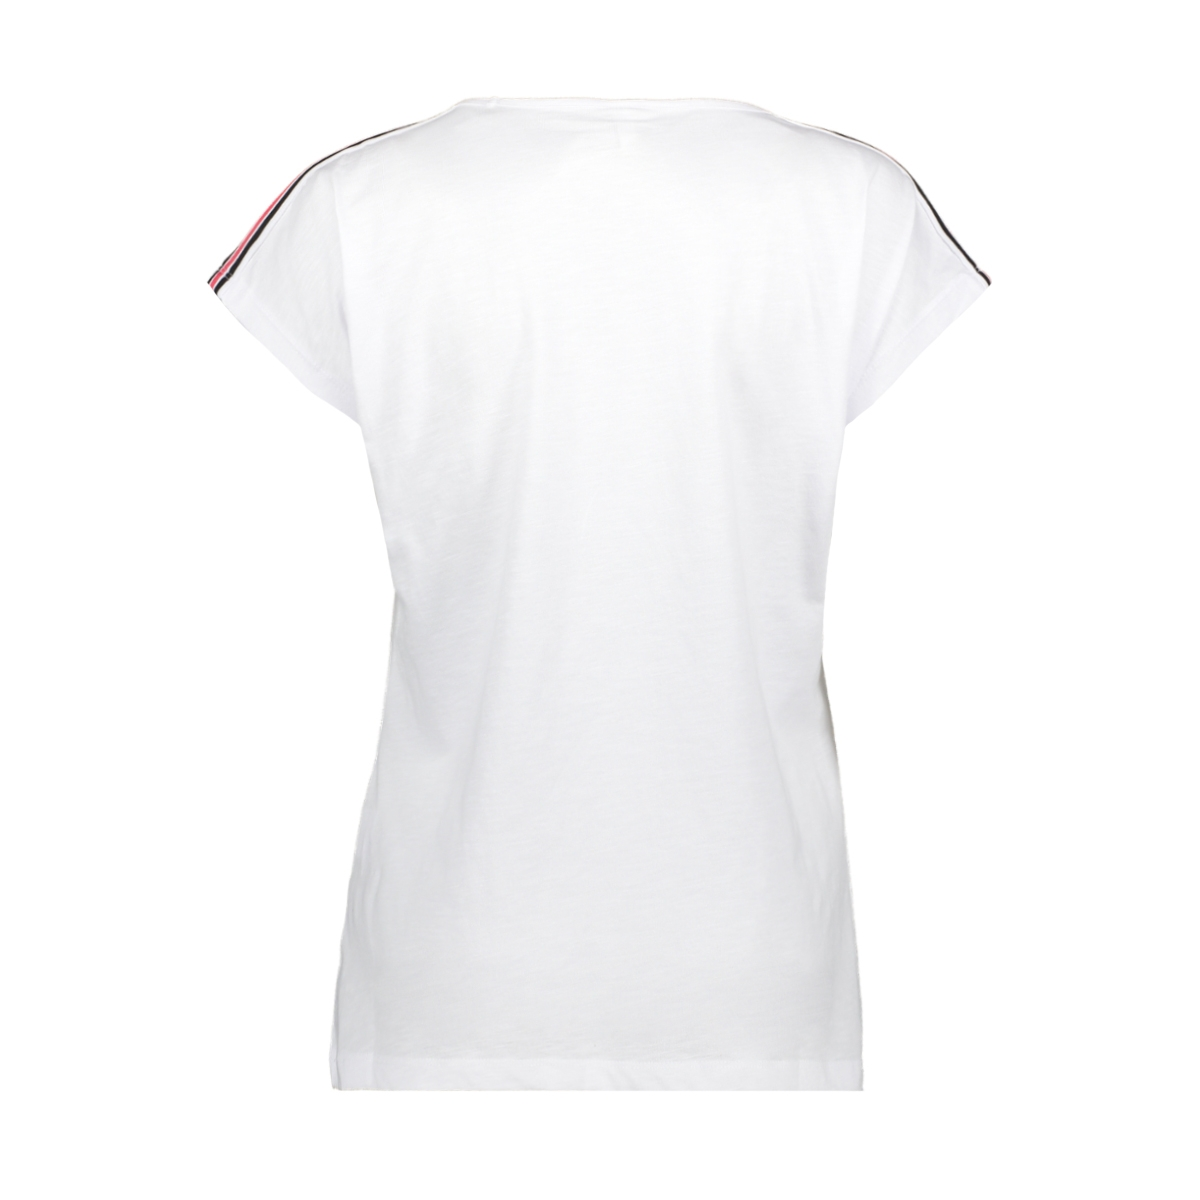 sacha printed t shirt 193 zoso t-shirt white/red